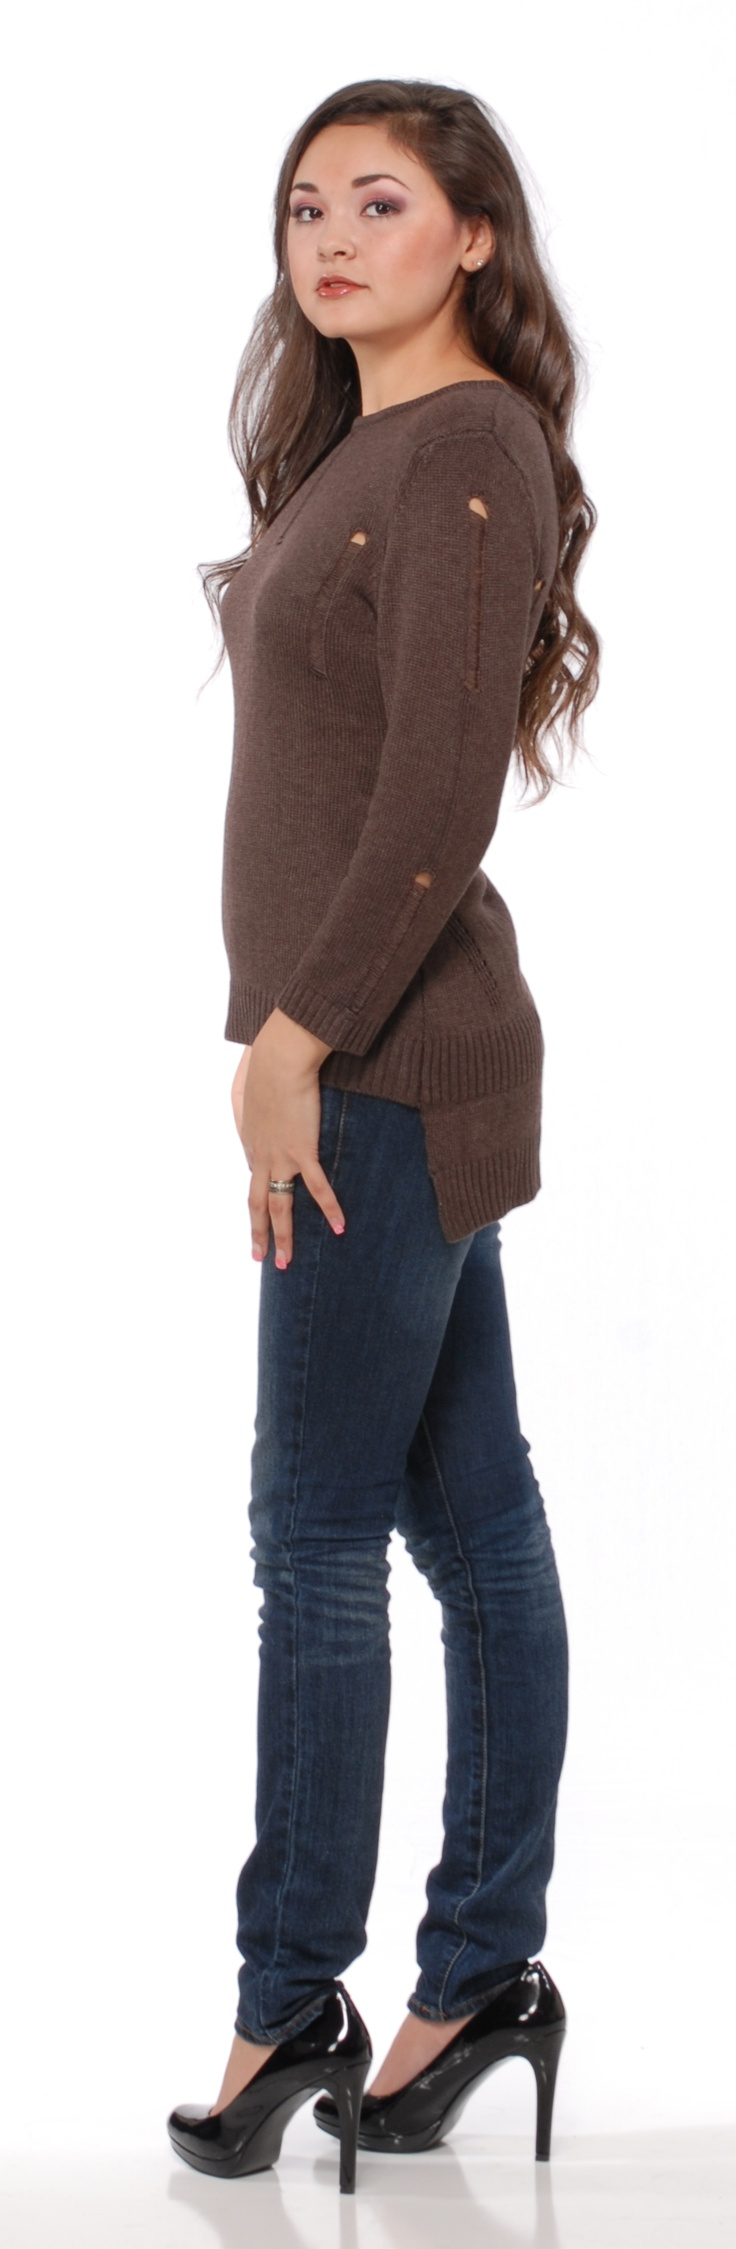 SW64 Long Sleeve Open Knit Tunic  Color: camel & black